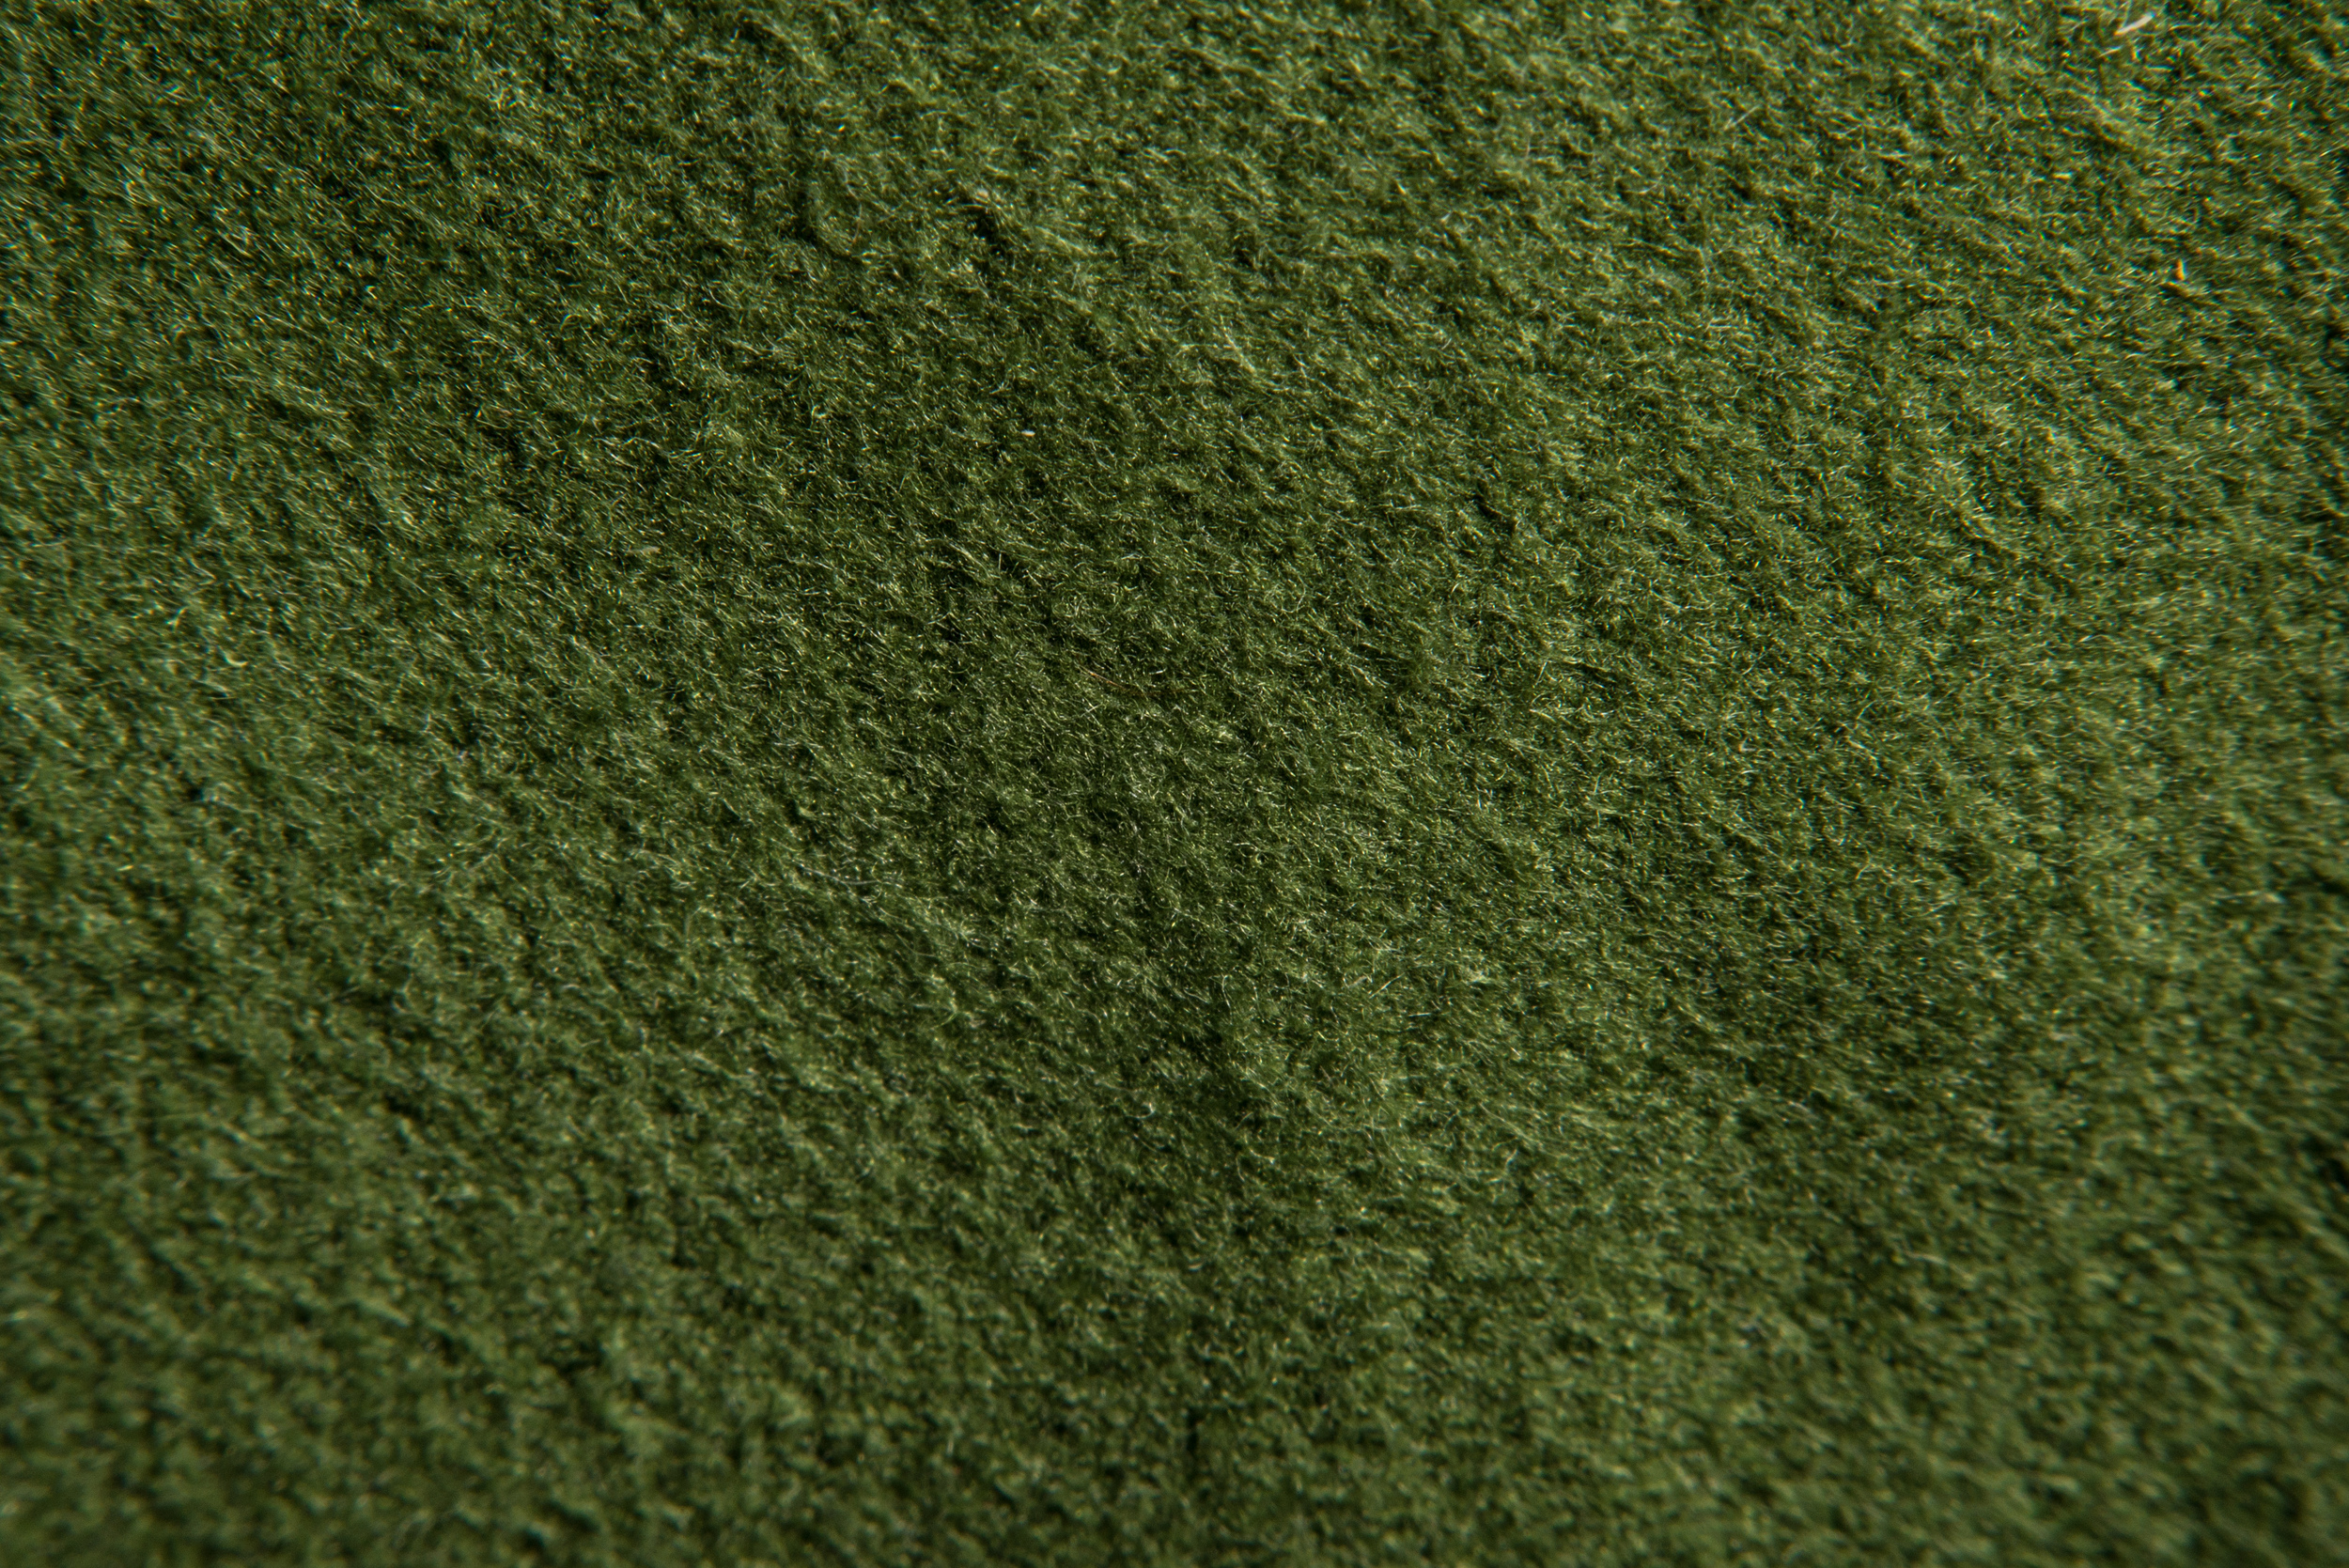 Macro photograph I took of a microfiber absorbent towel